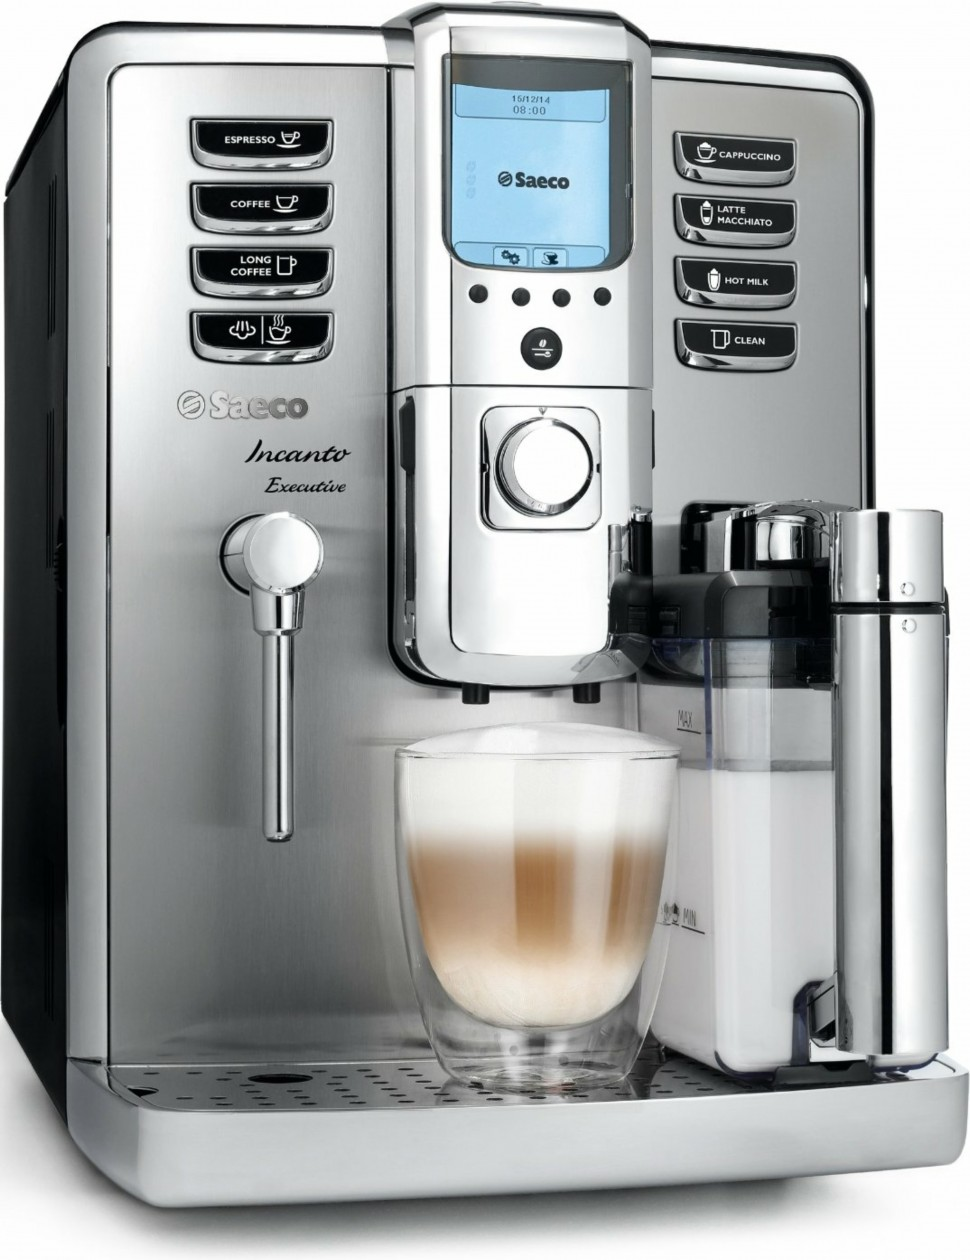 Philips Coffee Maker Bean To Cup : Philips HD9712/01 Automatic Incanto Bean-to-cup Coffee Machine Silver Genuine eBay